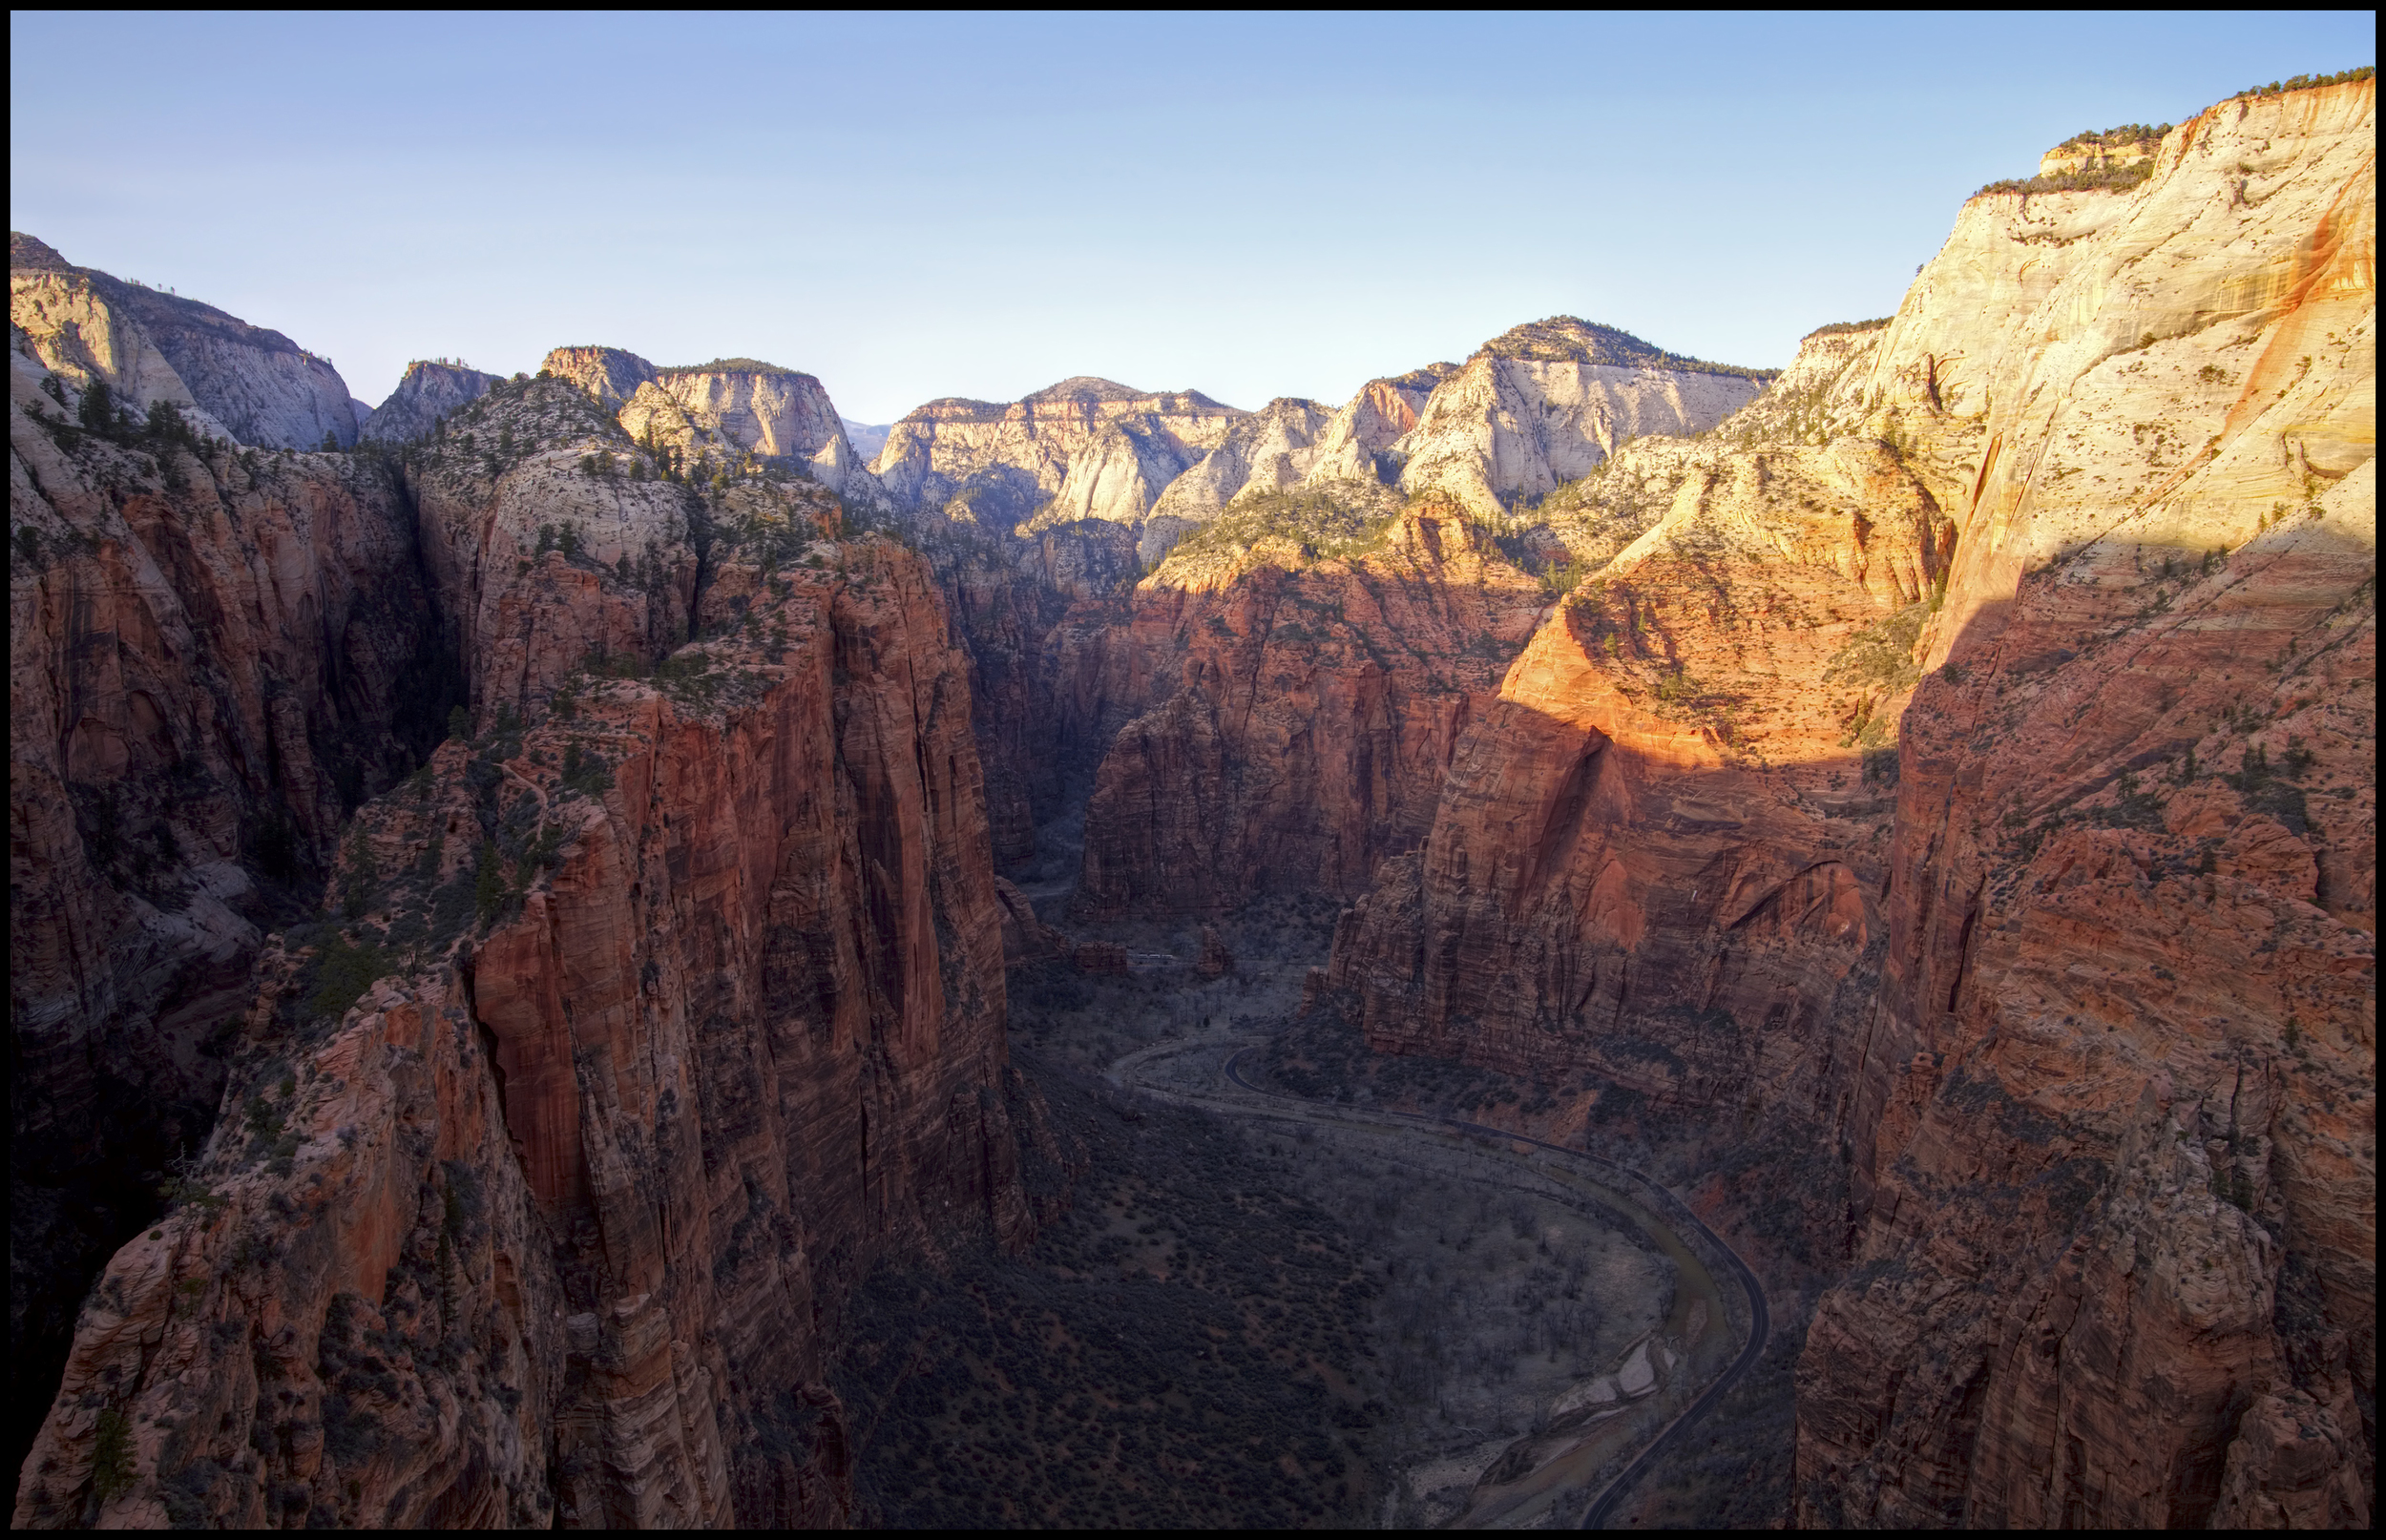 View from Angel's Landing, Zion National Park, UT